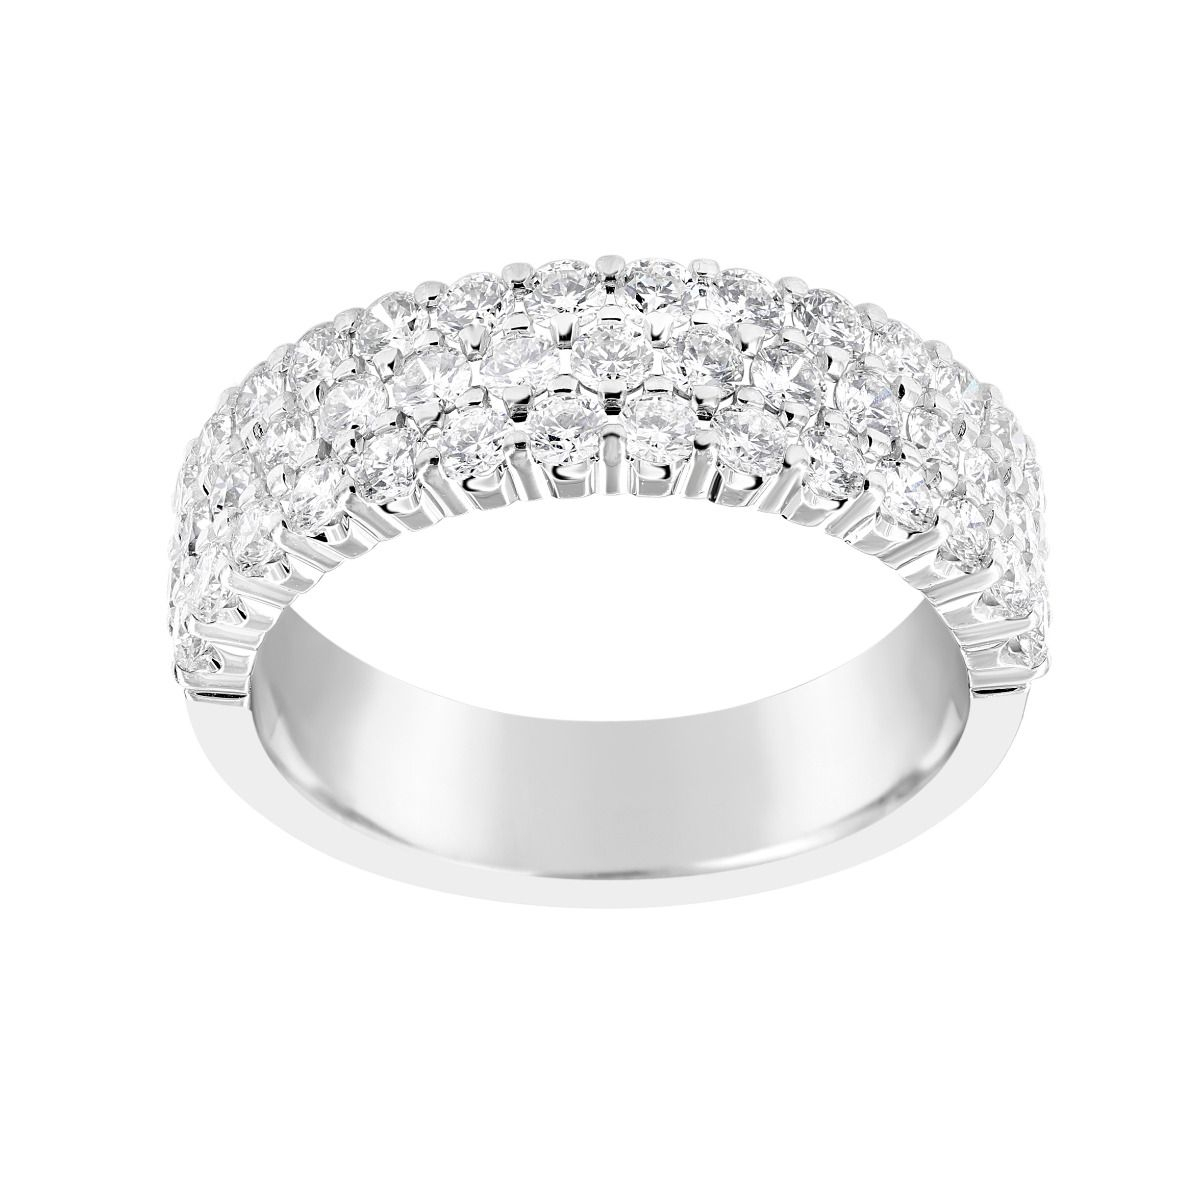 Twolondon 14k White Gold Three Row Diamond Anniversary Band For 2019 Diamond Double Row Anniversary Bands In White Gold (View 8 of 25)